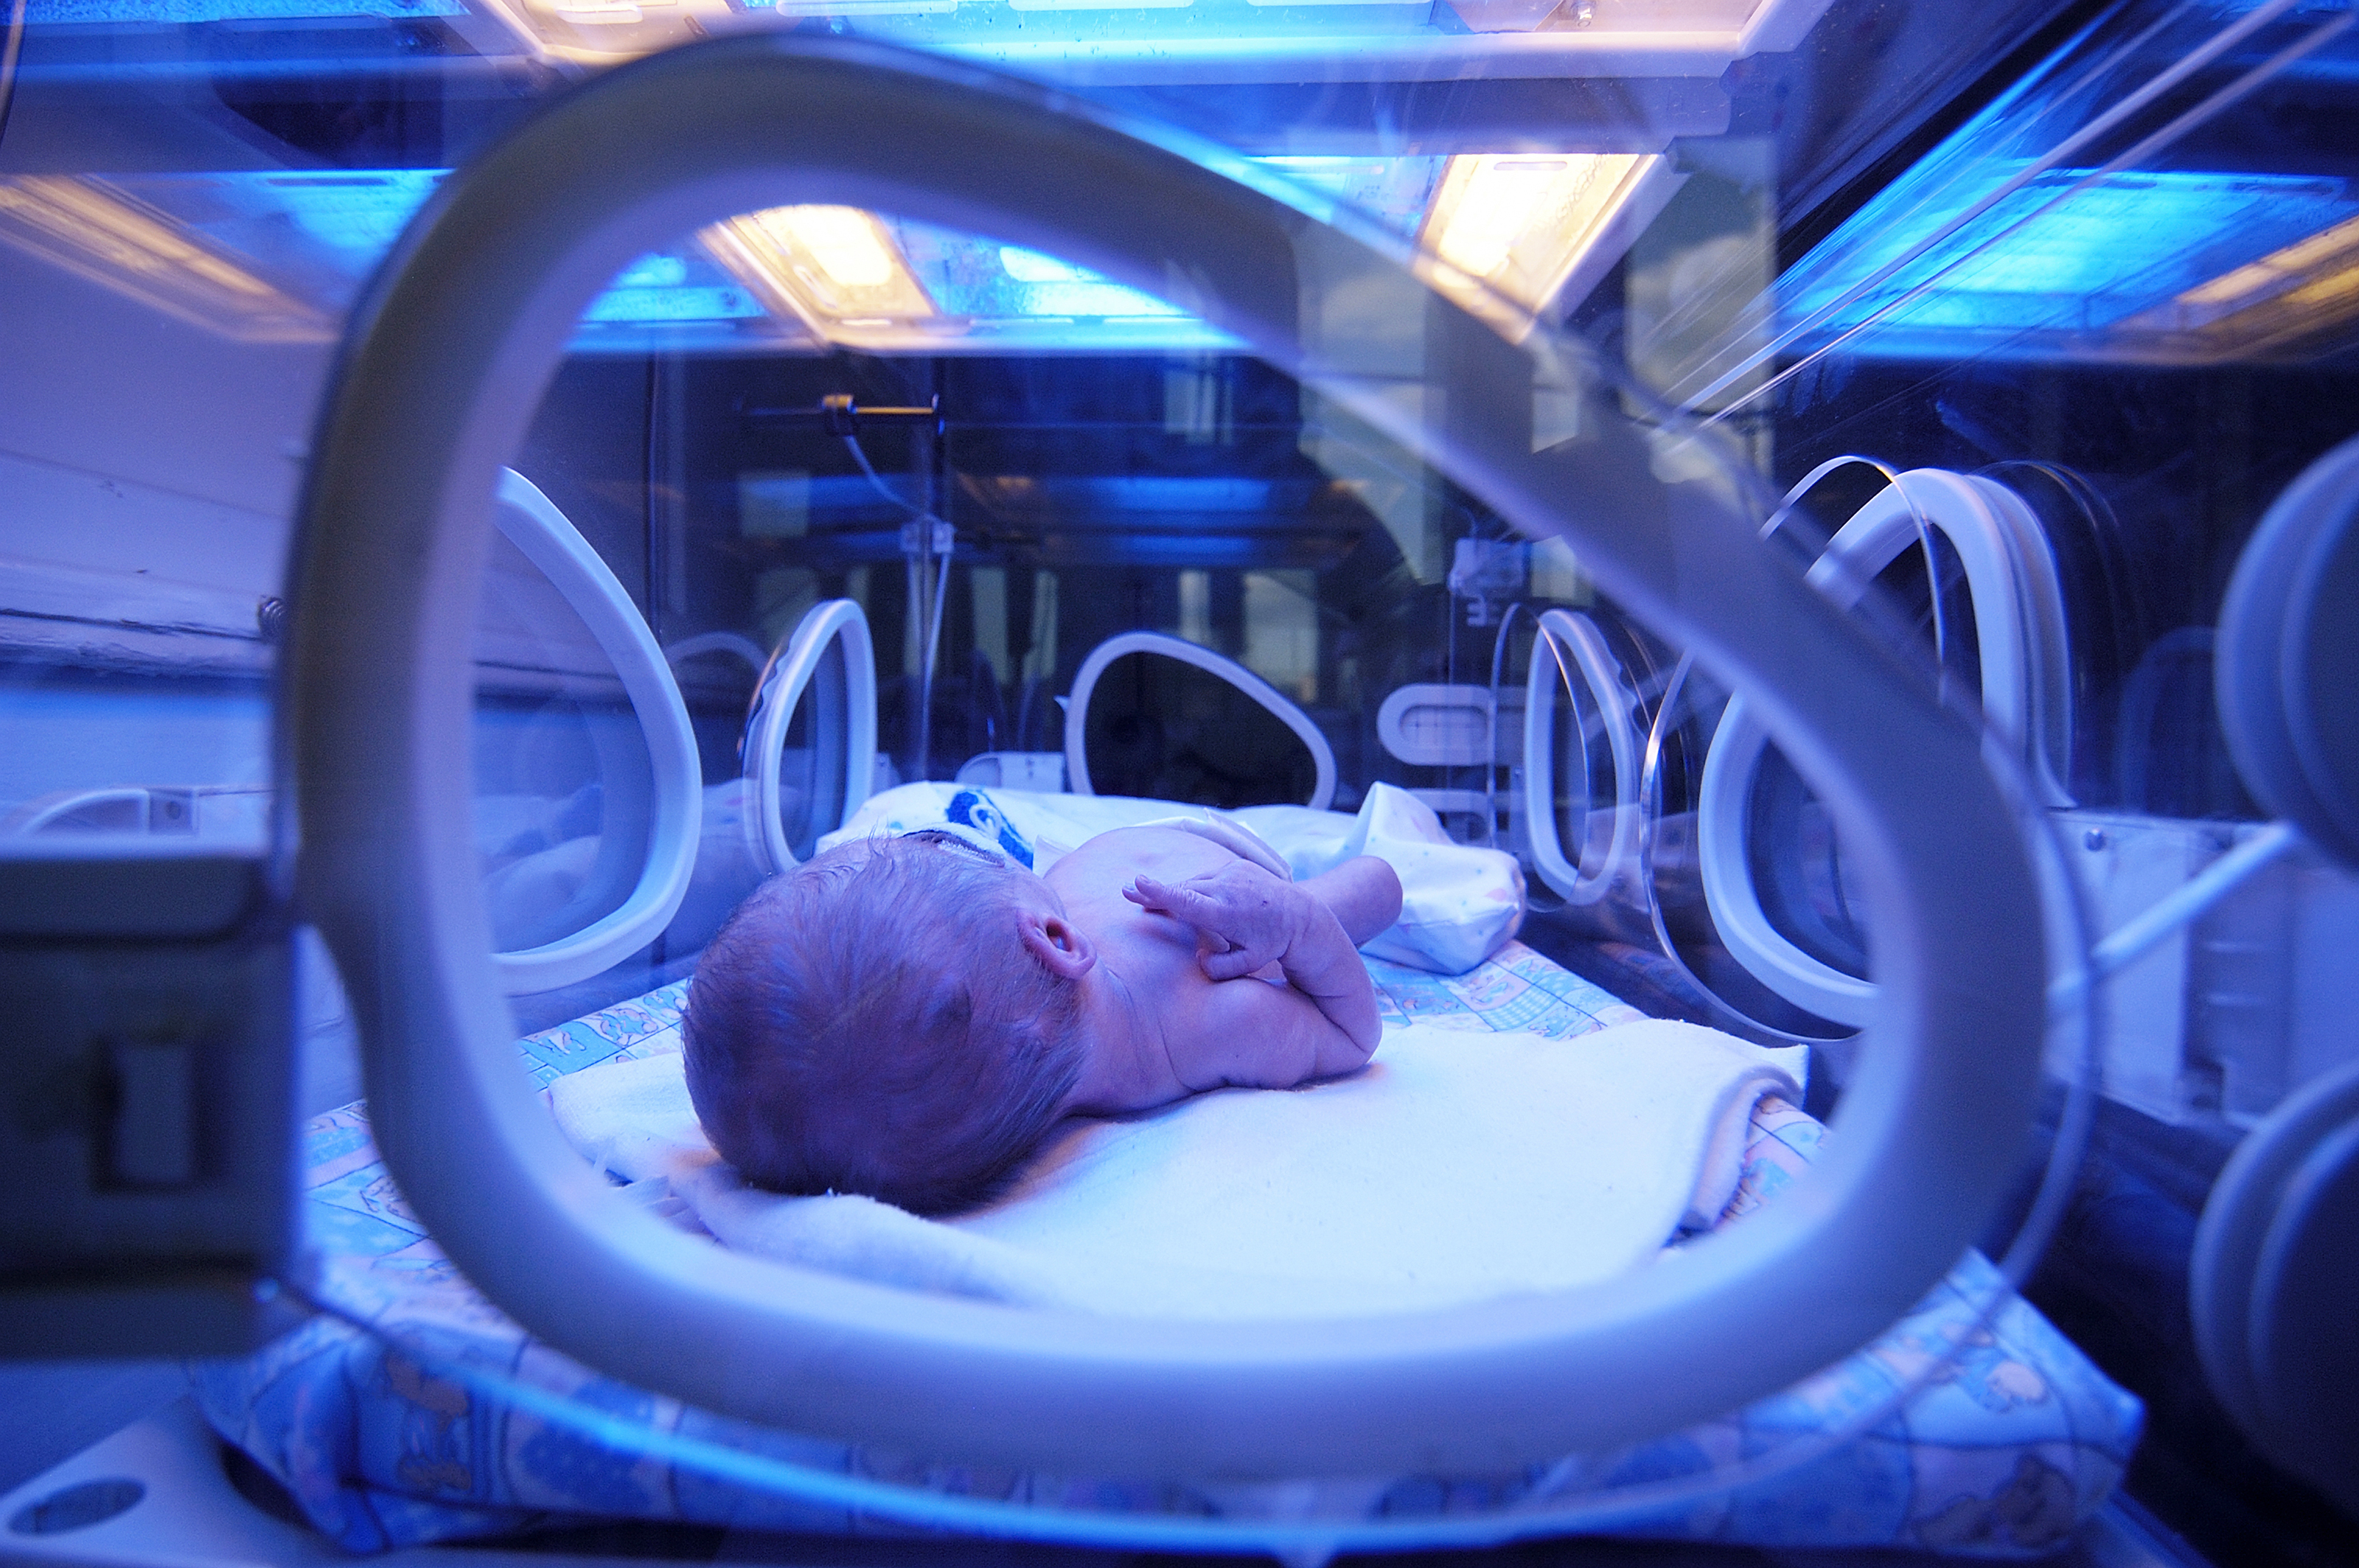 Newborn Babies Jaundice Treatment Jaundice In Newborns Could Be An Evolutionary Safeguard